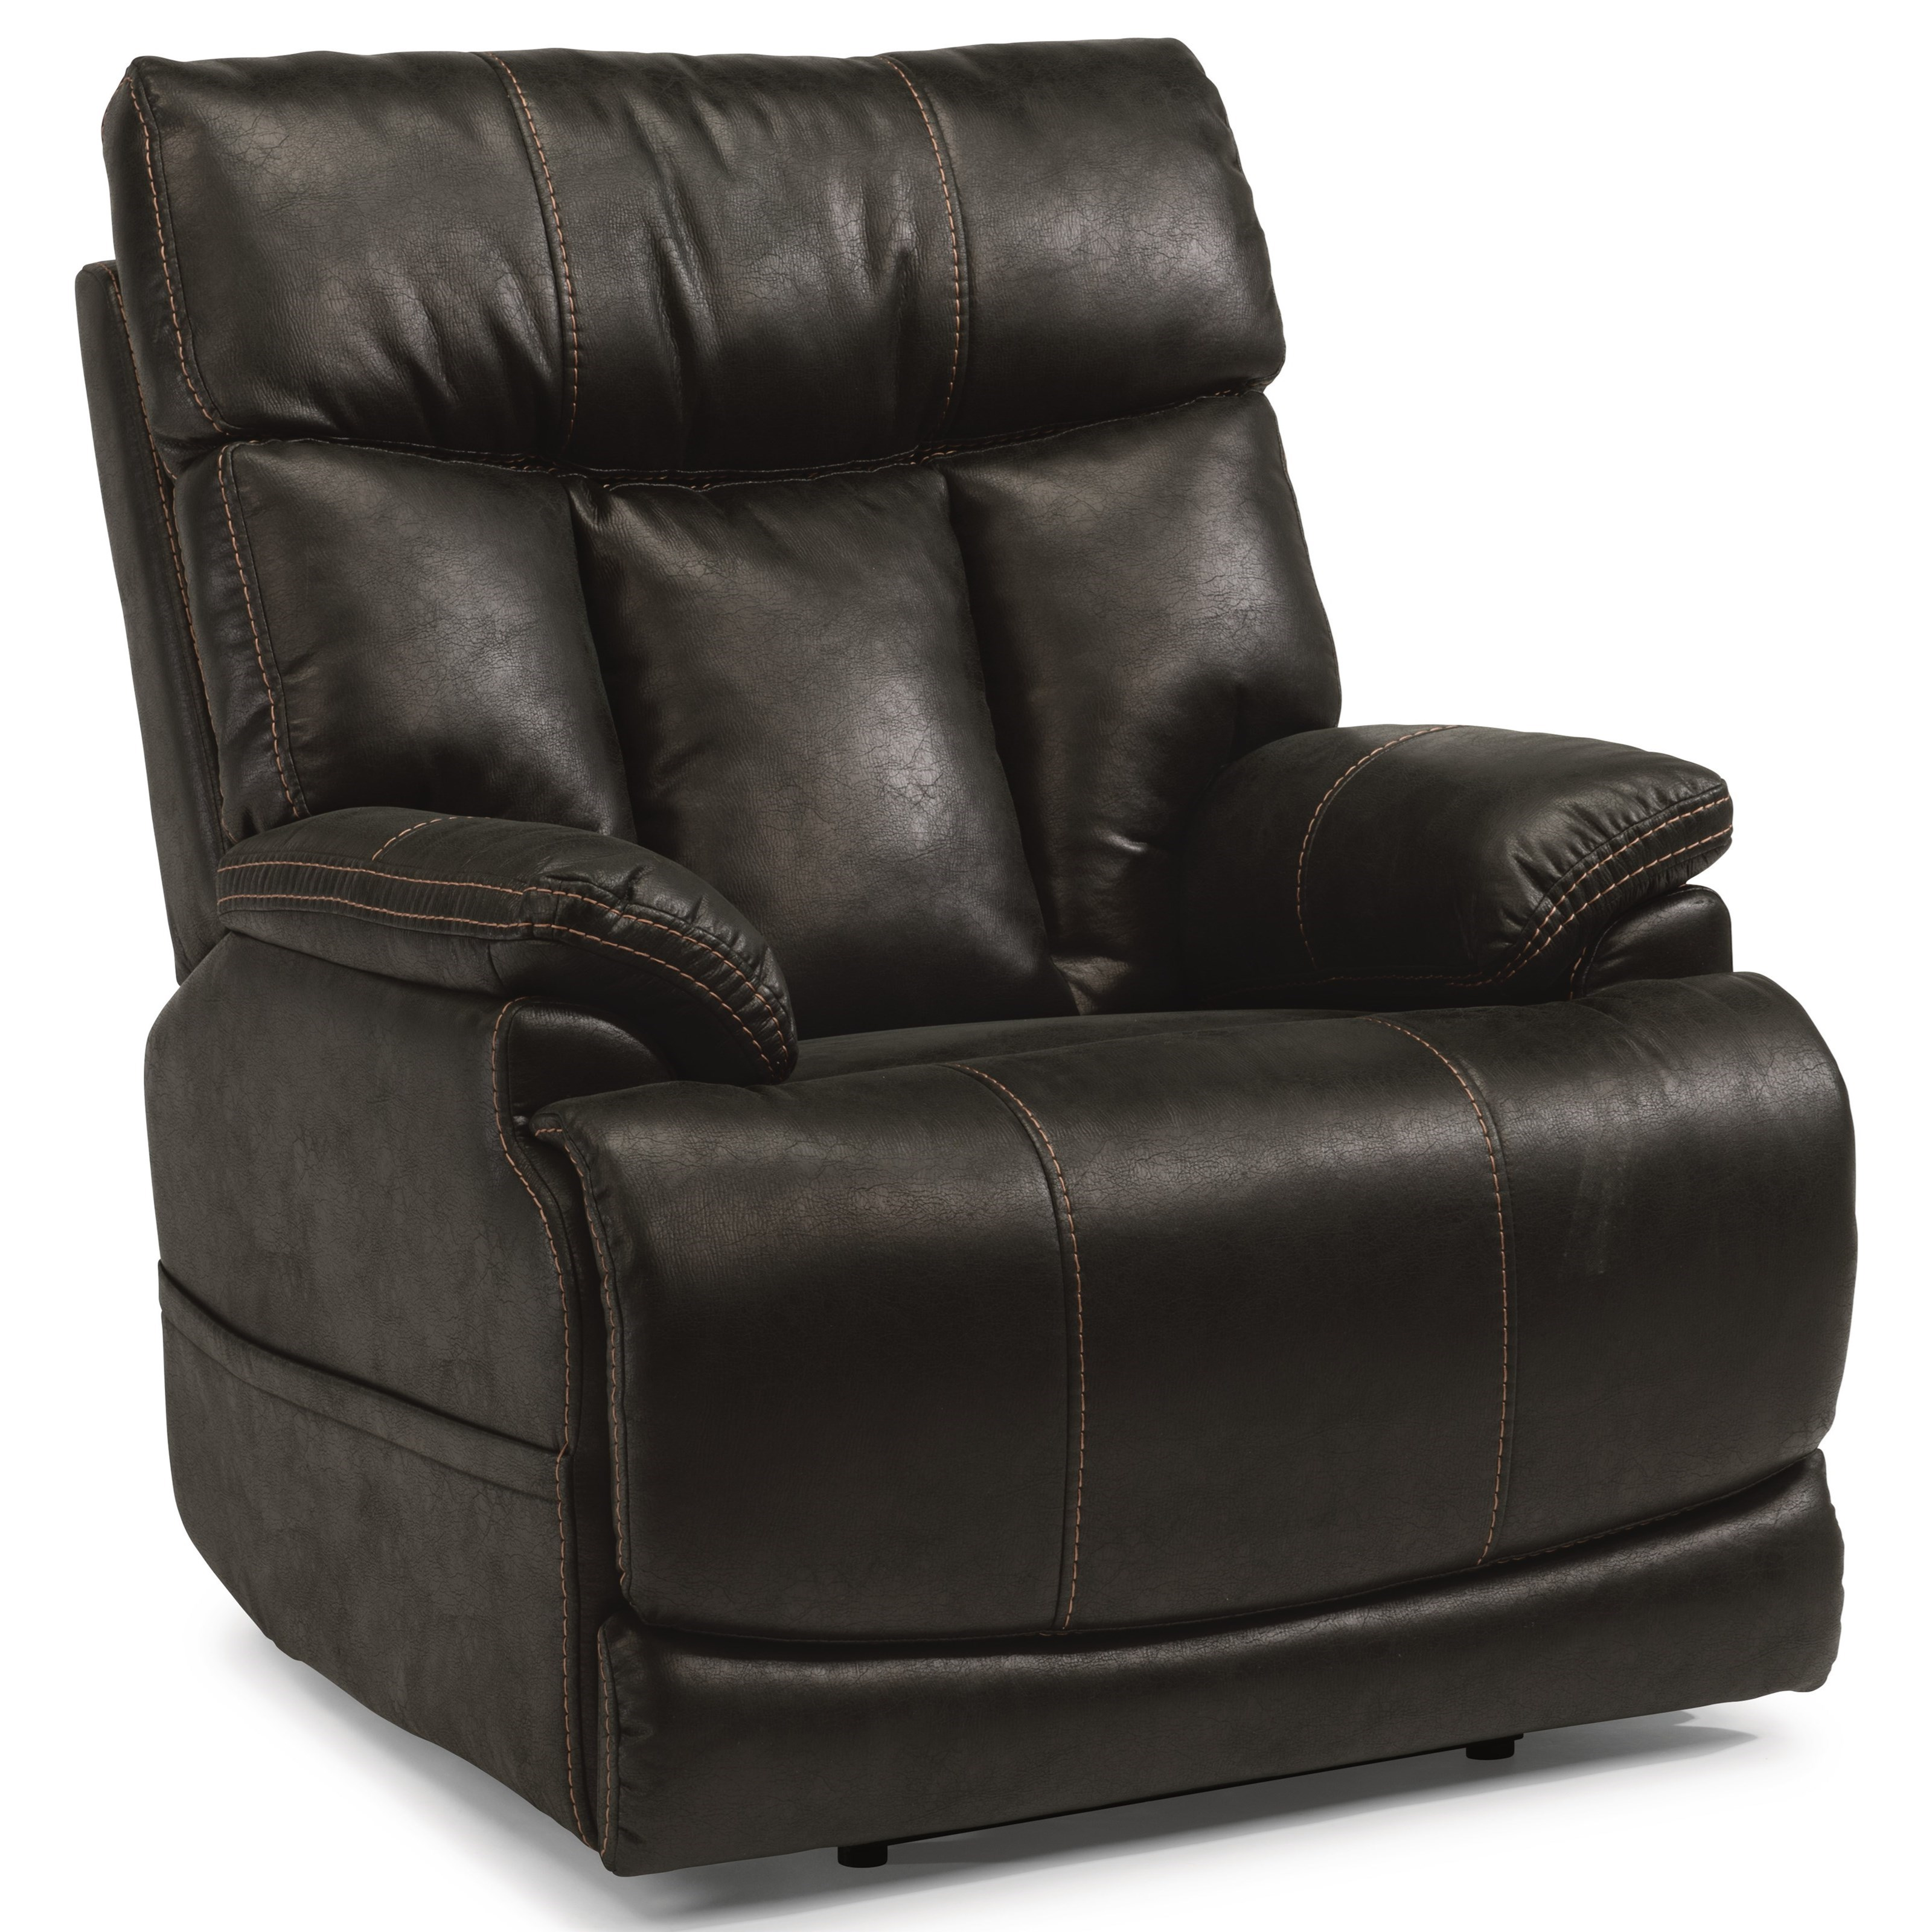 Latitudes-Clive Power Recliner with Power Headrest by Flexsteel at Zak's Home